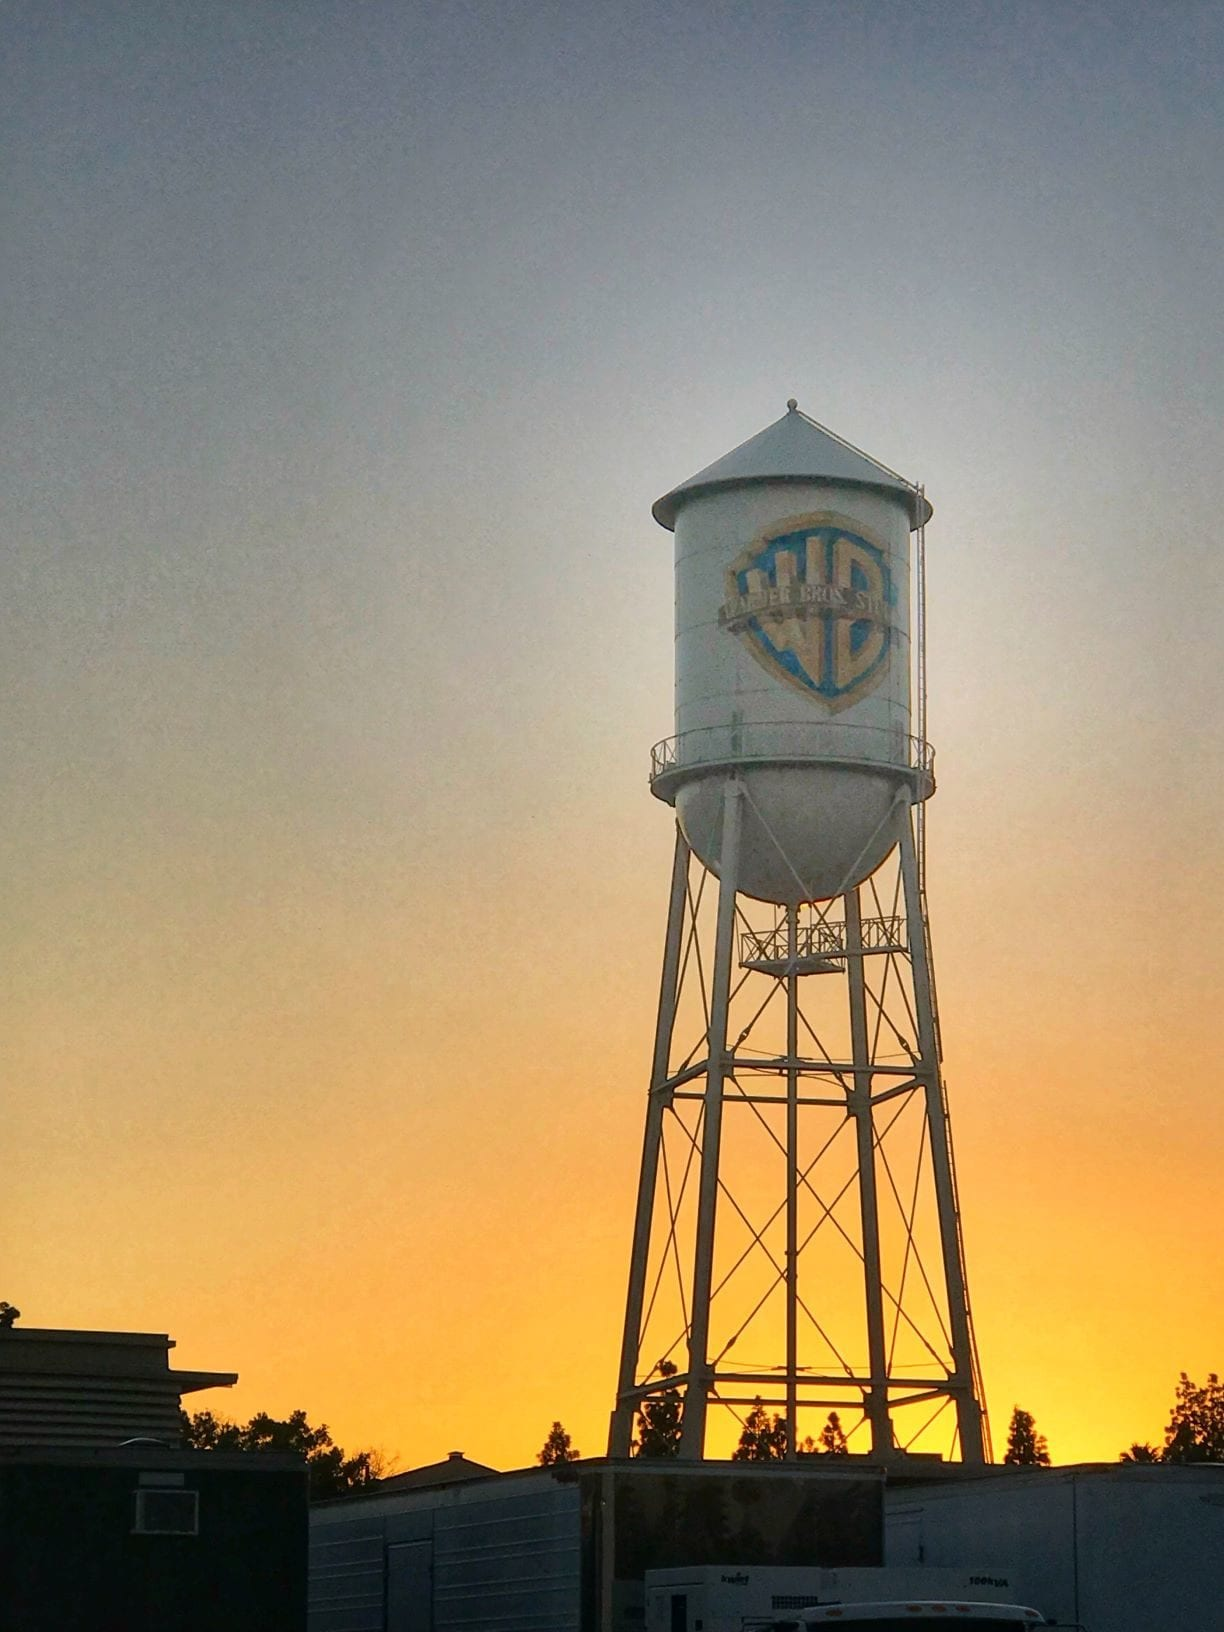 A close-up of the iconic Warner Bros. Studio tower during our backlot VIP tour